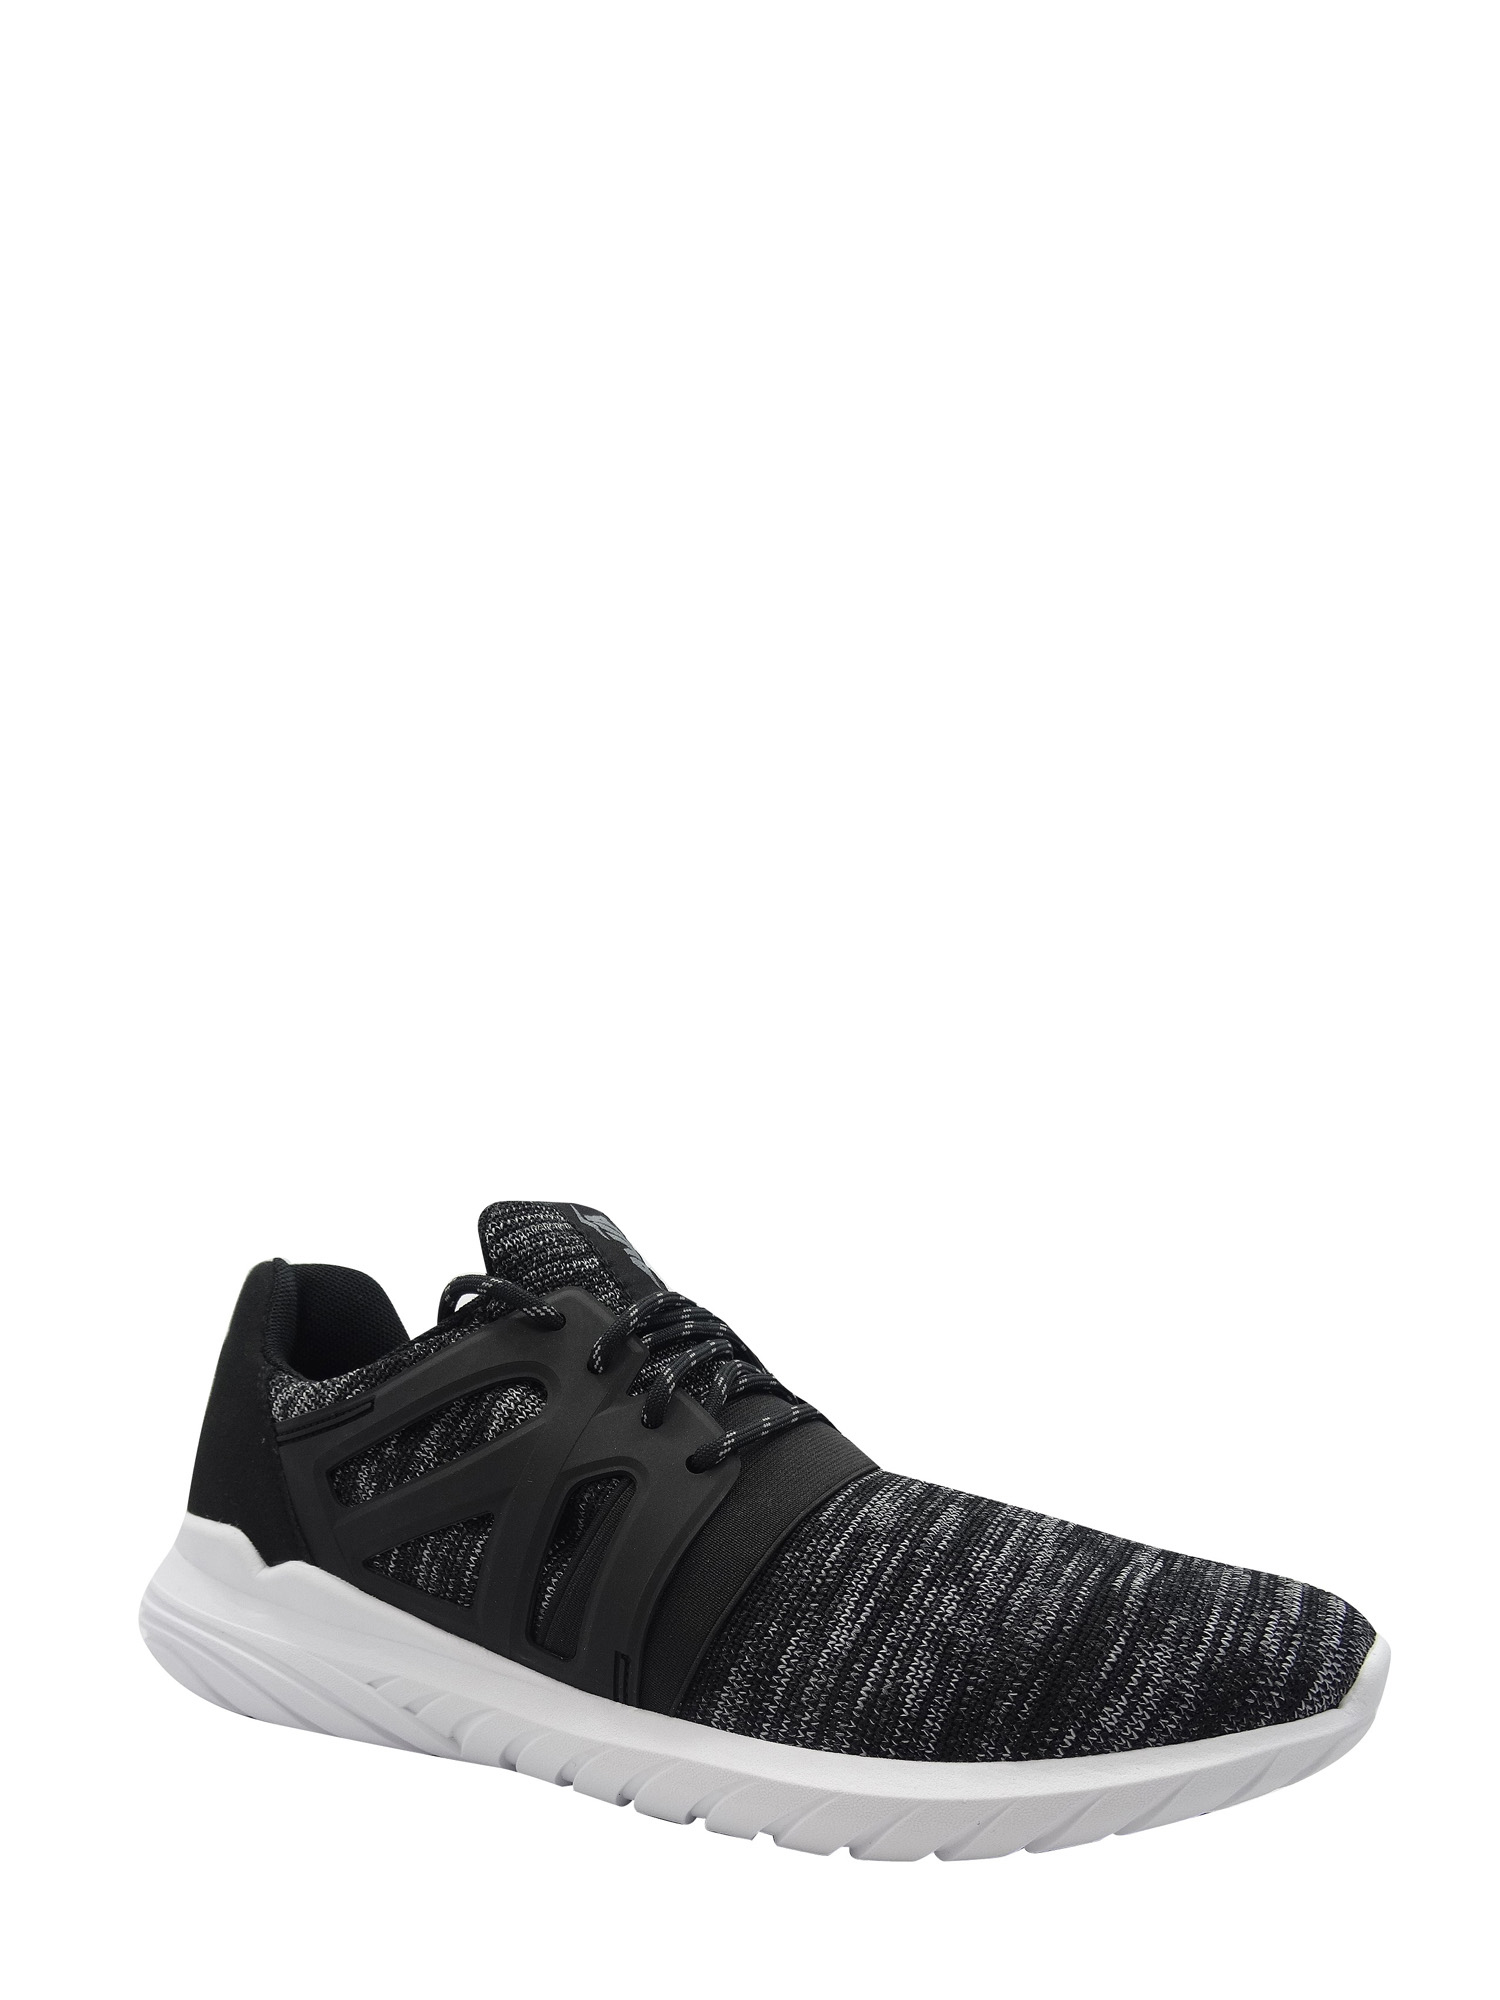 Avia Men's Caged Jogger Shoe by Generic